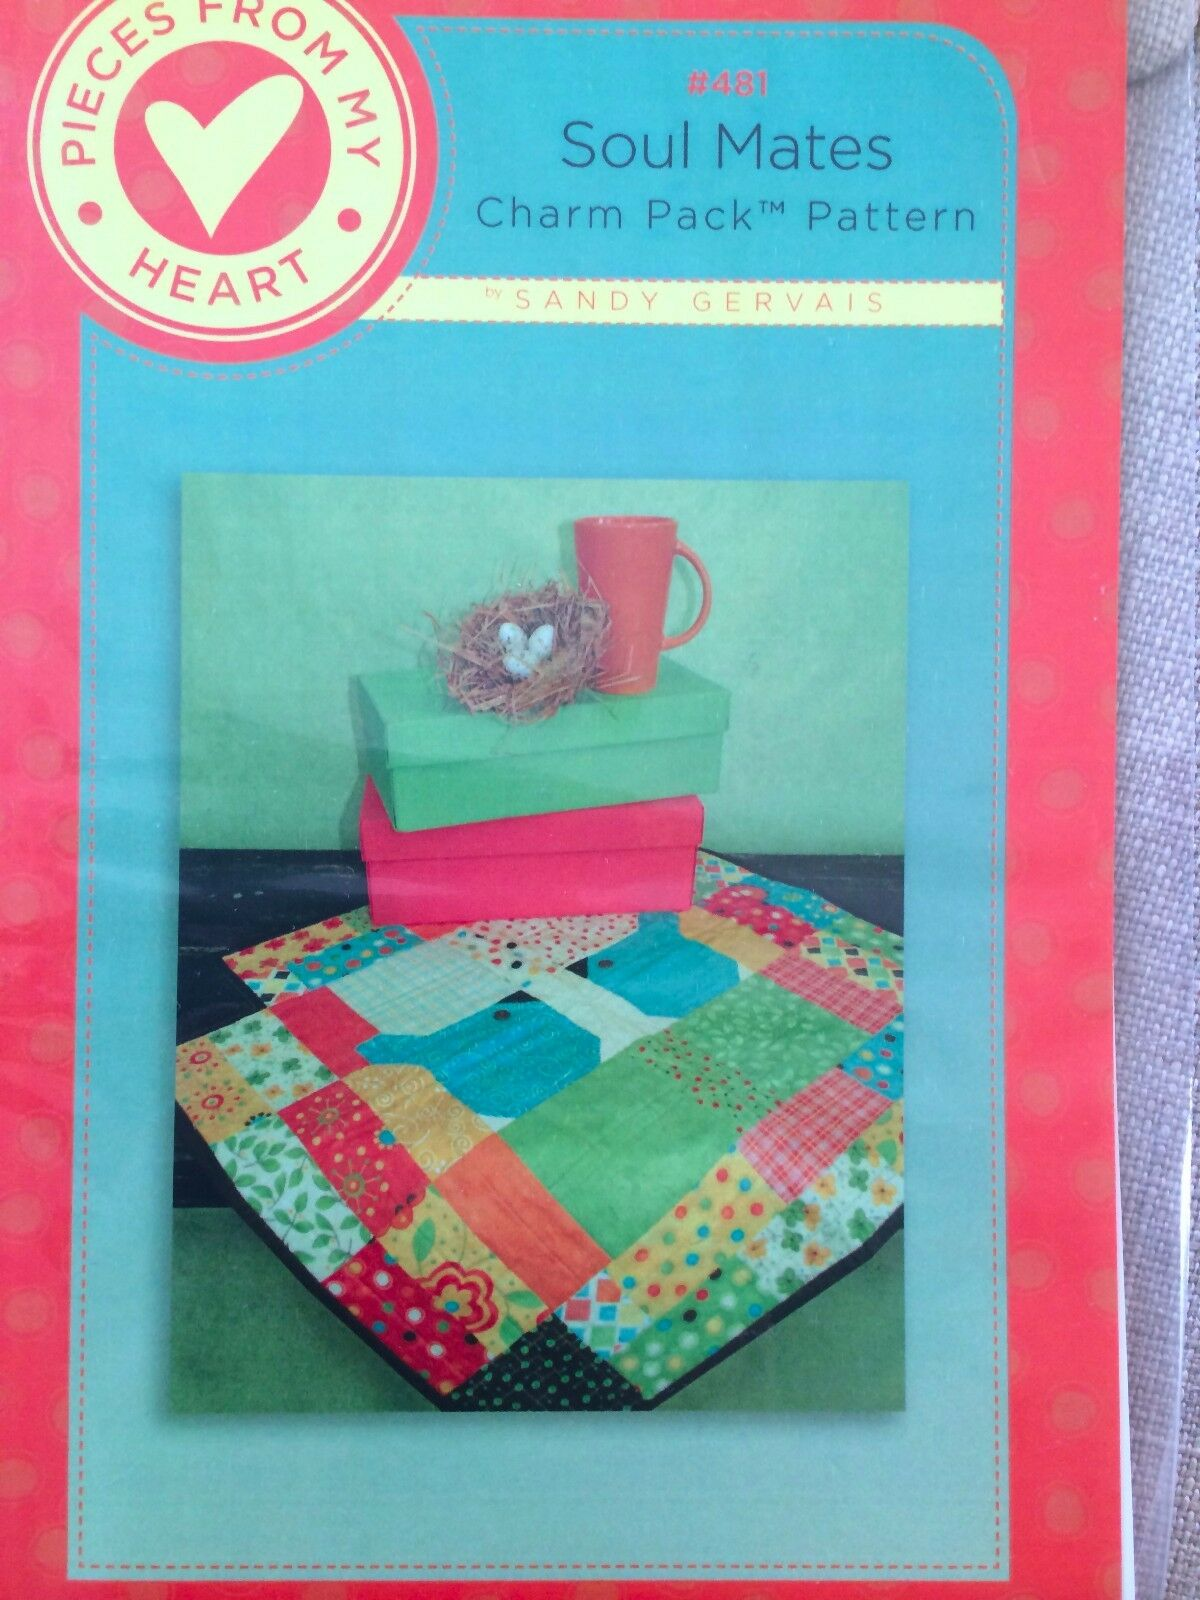 away wrapped this pack some your pattern scene breeze and cheerful create summer img ribbon dancing mini all up charm quilt by to favorite new carried grab fabrics quilting coordinating a